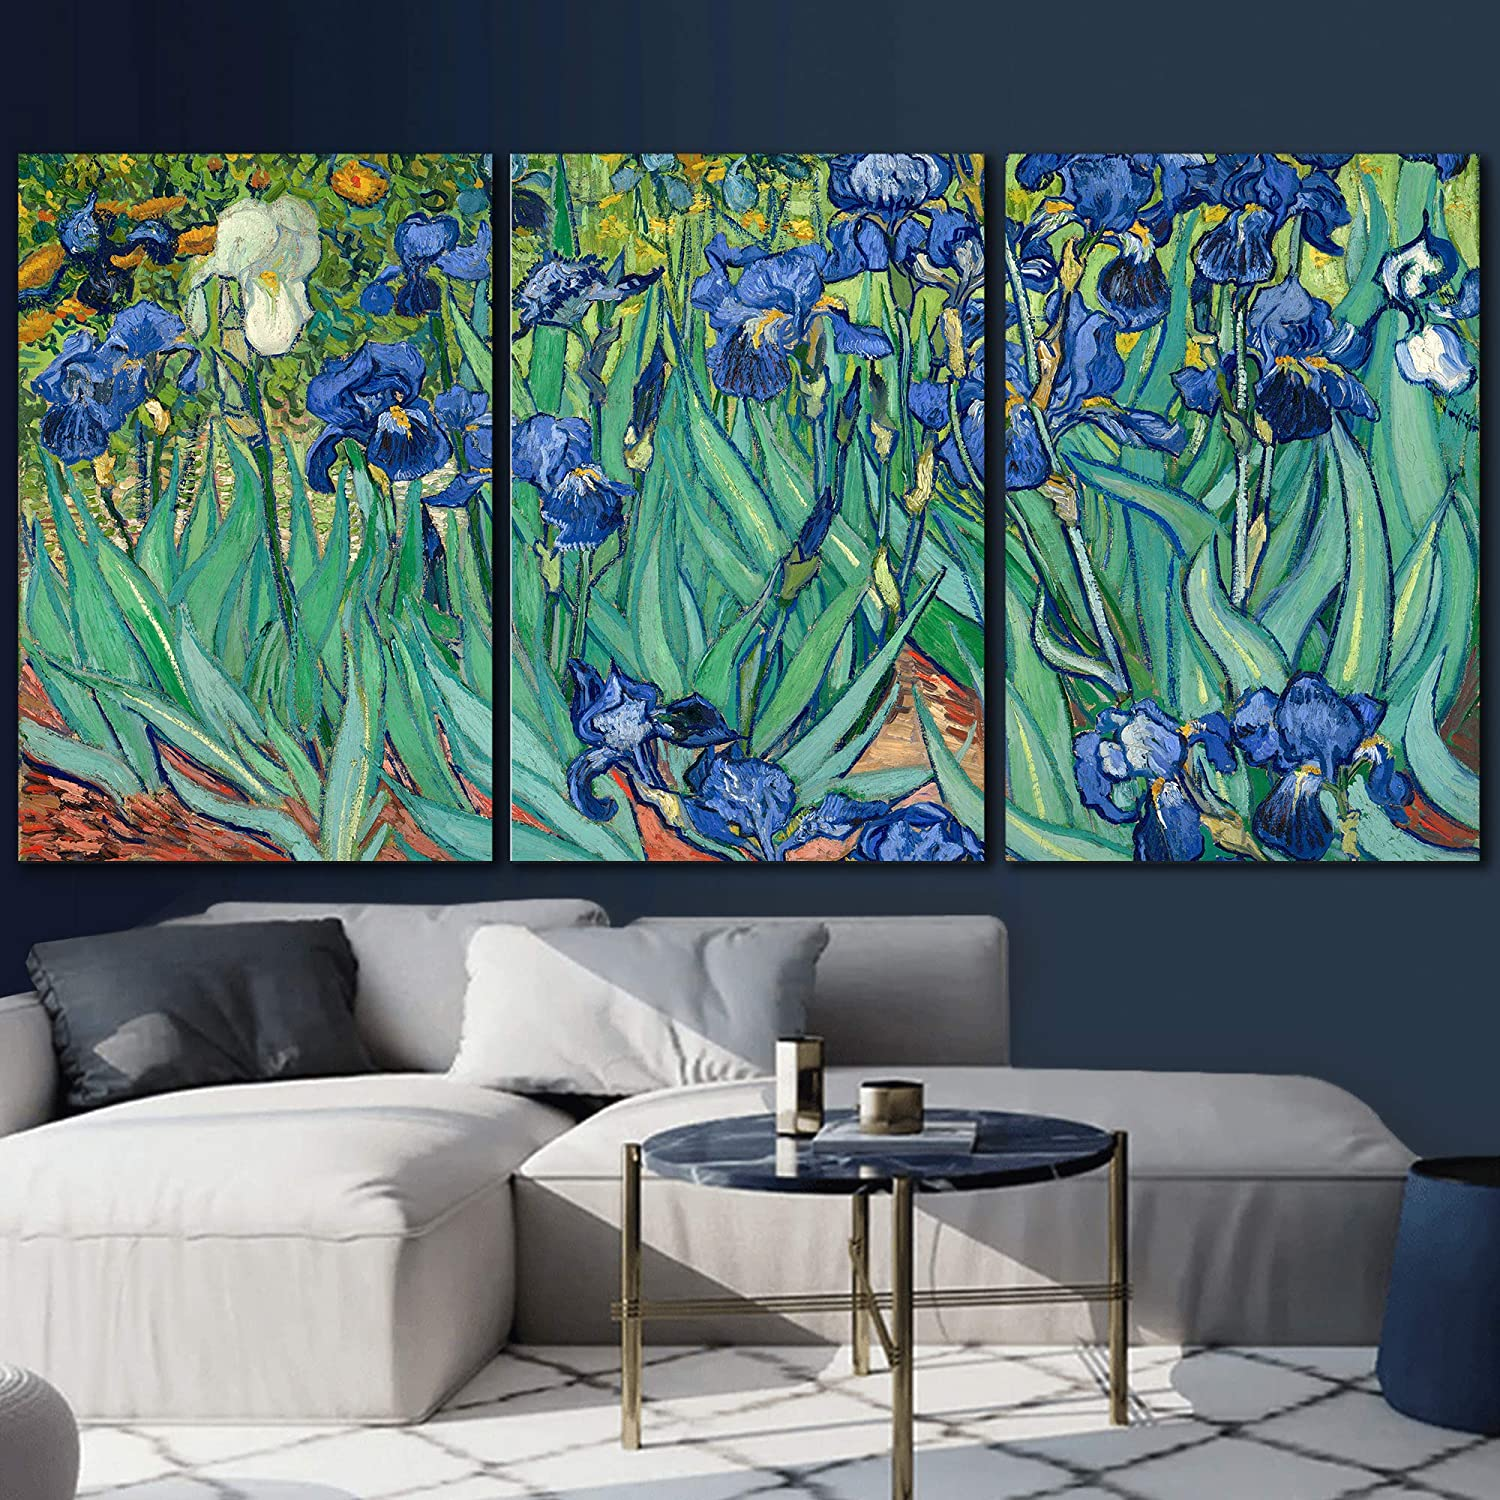 wall26 3 Panel Canvas Wall Art - Irises by Vincent Van Gogh - Giclee Print Gallery Wrap Modern Home Art Ready to Hang - 24